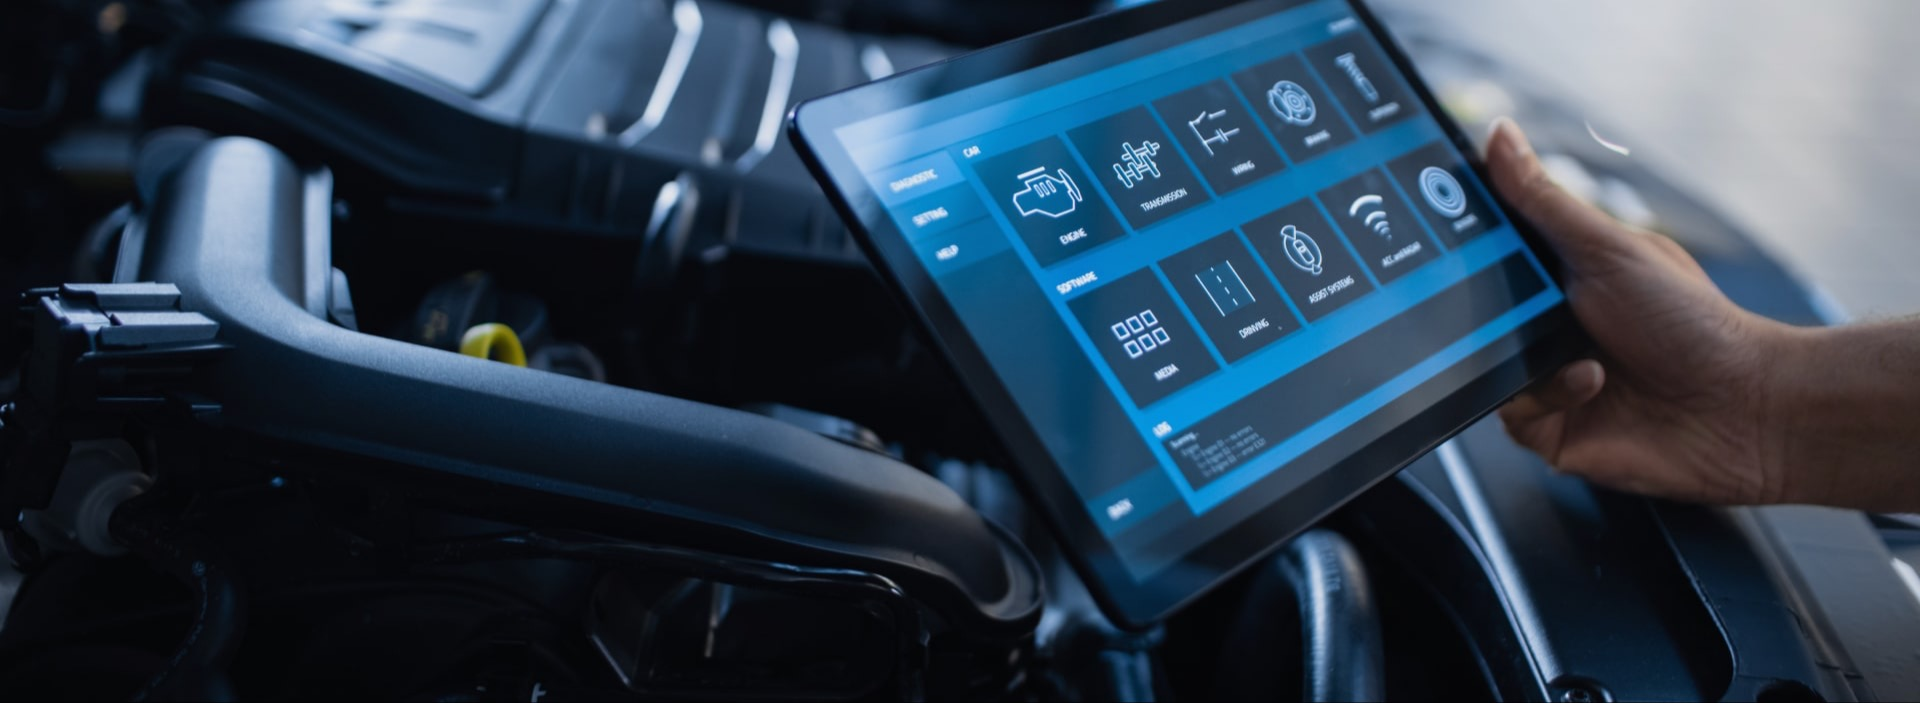 Predictive maintenance in the automotive industry: How to make it work for you